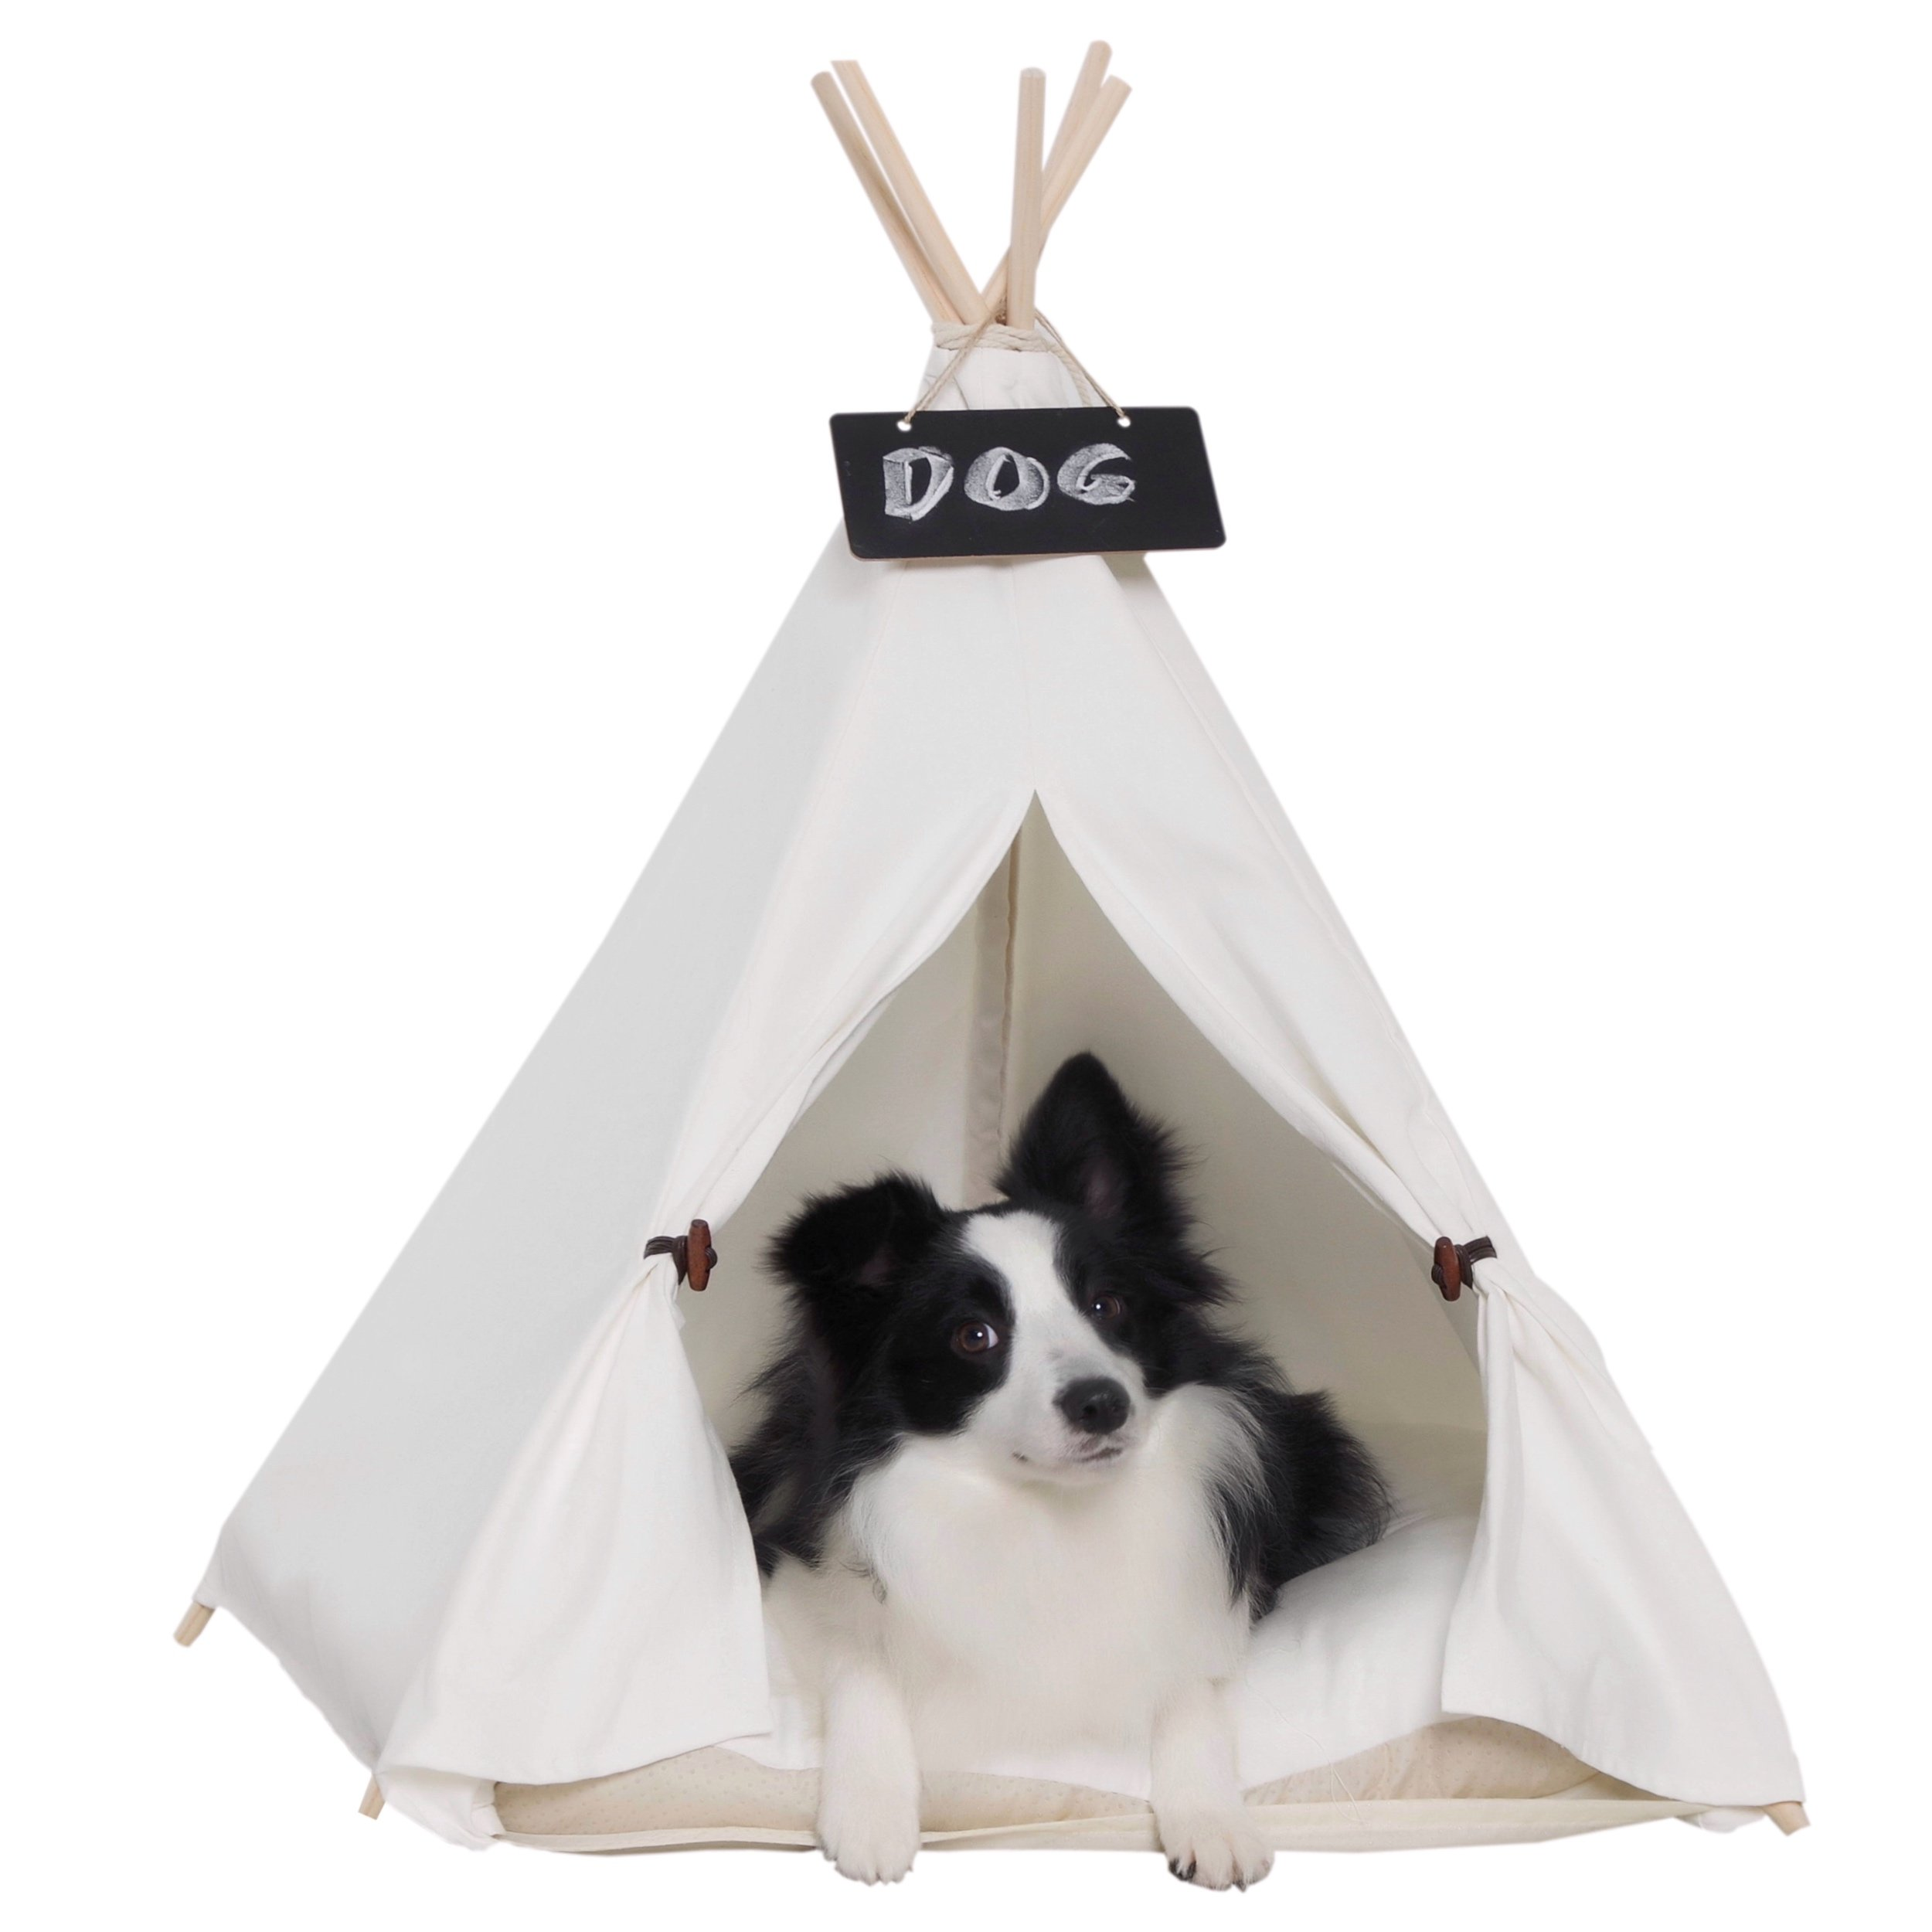 little dove Pet Teepee Dog(Puppy) & Cat Bed - Portable Pet Tents & Houses for Dog(Puppy) & Cat Beige Color 28 Inch with Thick Cushion by little dove